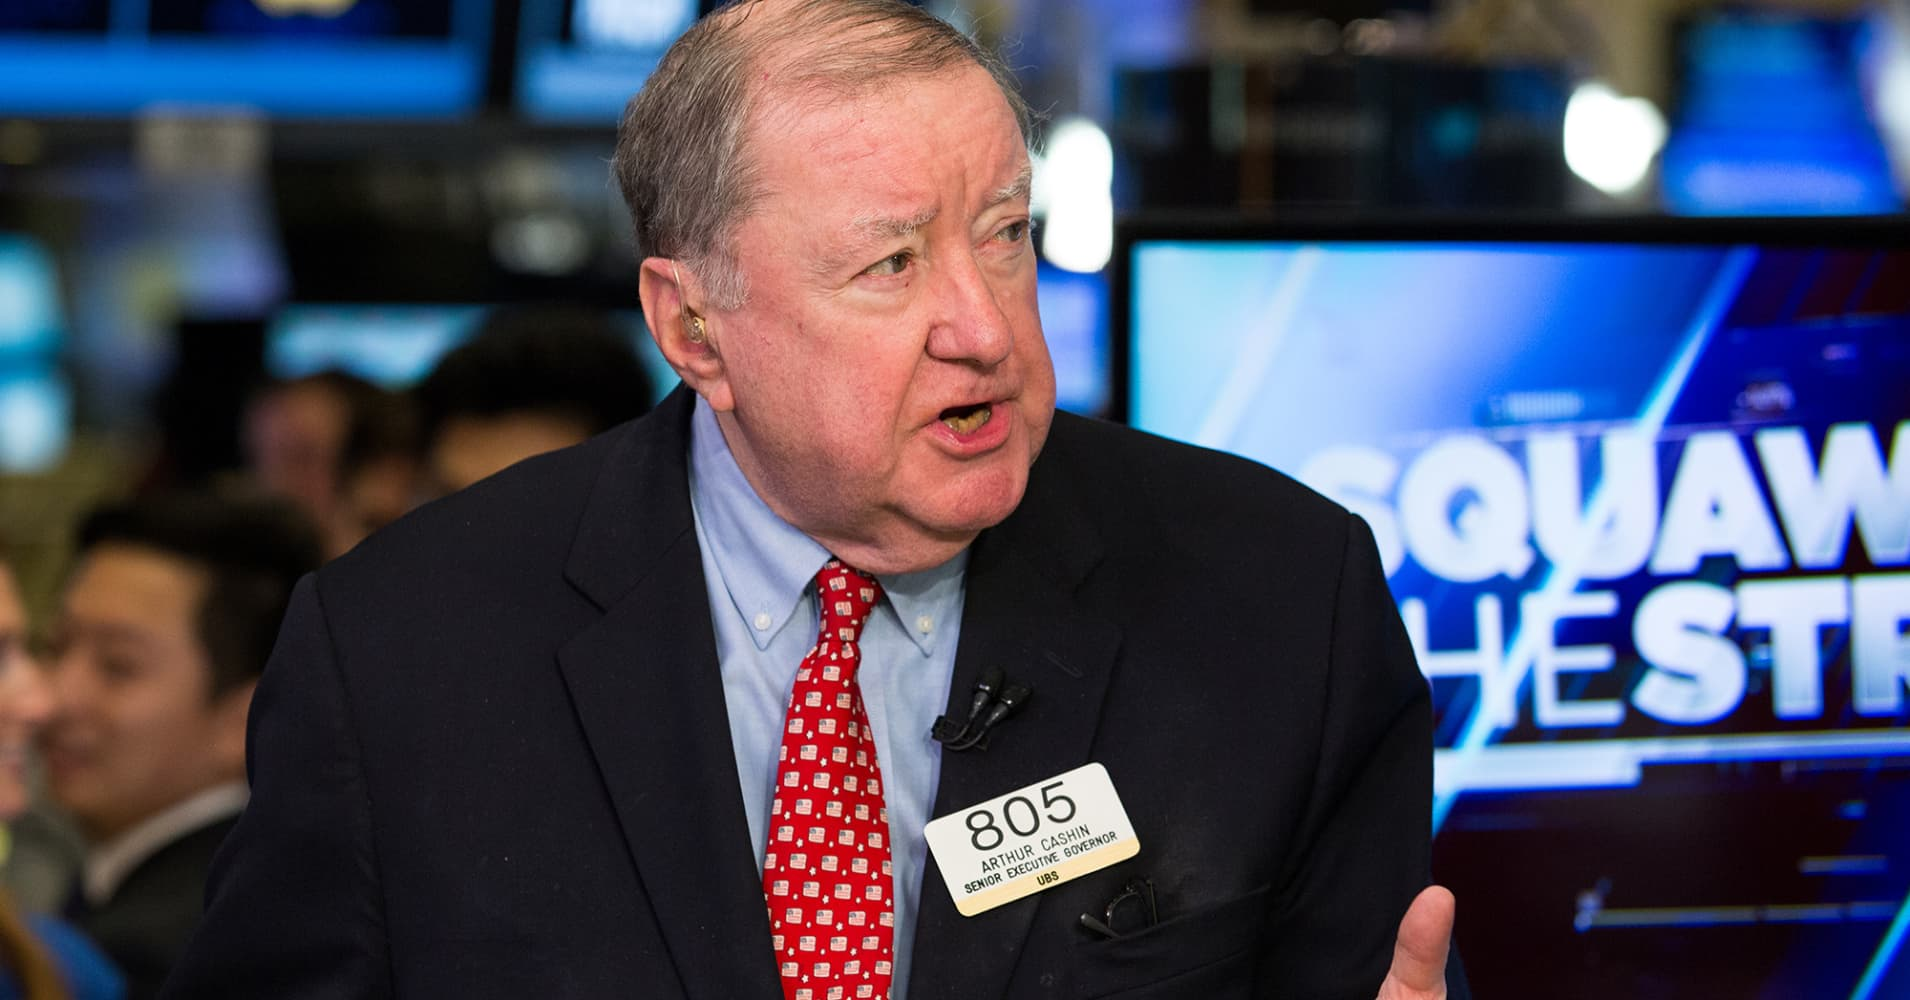 Art Cashin: Markets expect Europe to eventually 'accommodate' Trump on trade